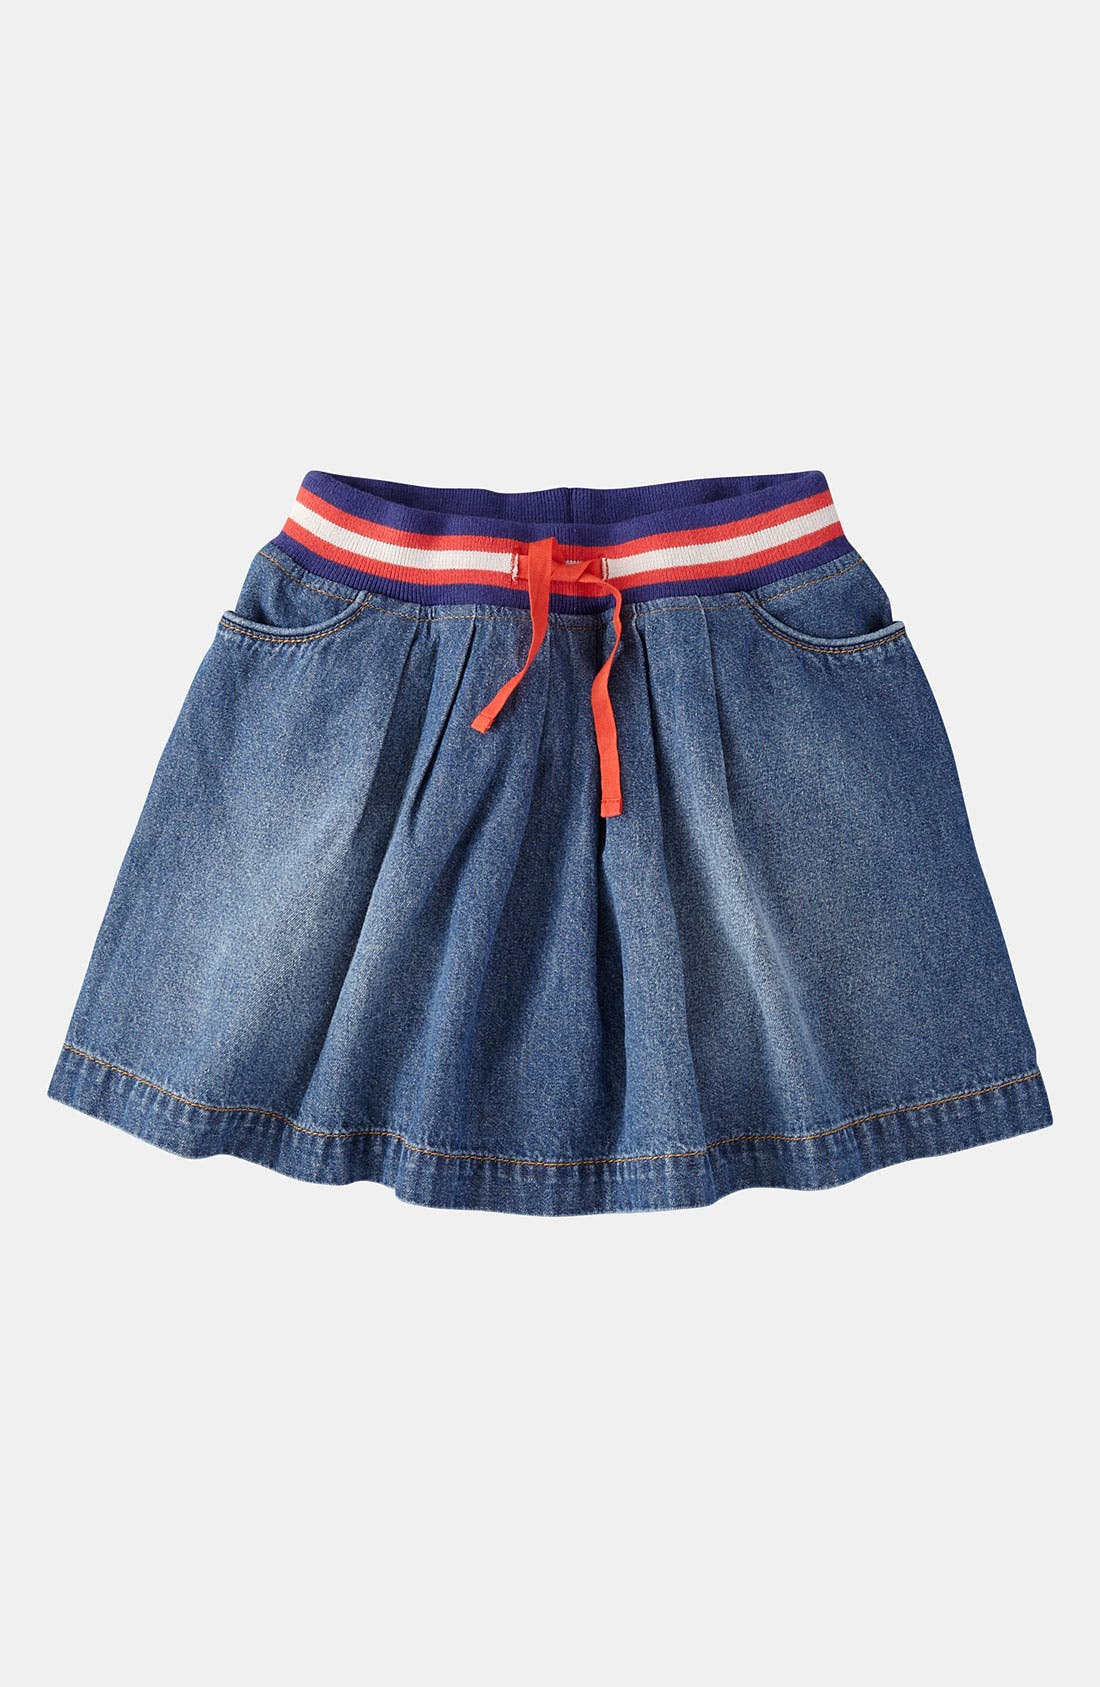 Alternate Image 1 Selected - Mini Boden Ribbed Waist Skirt (Little Girls & Big Girls)